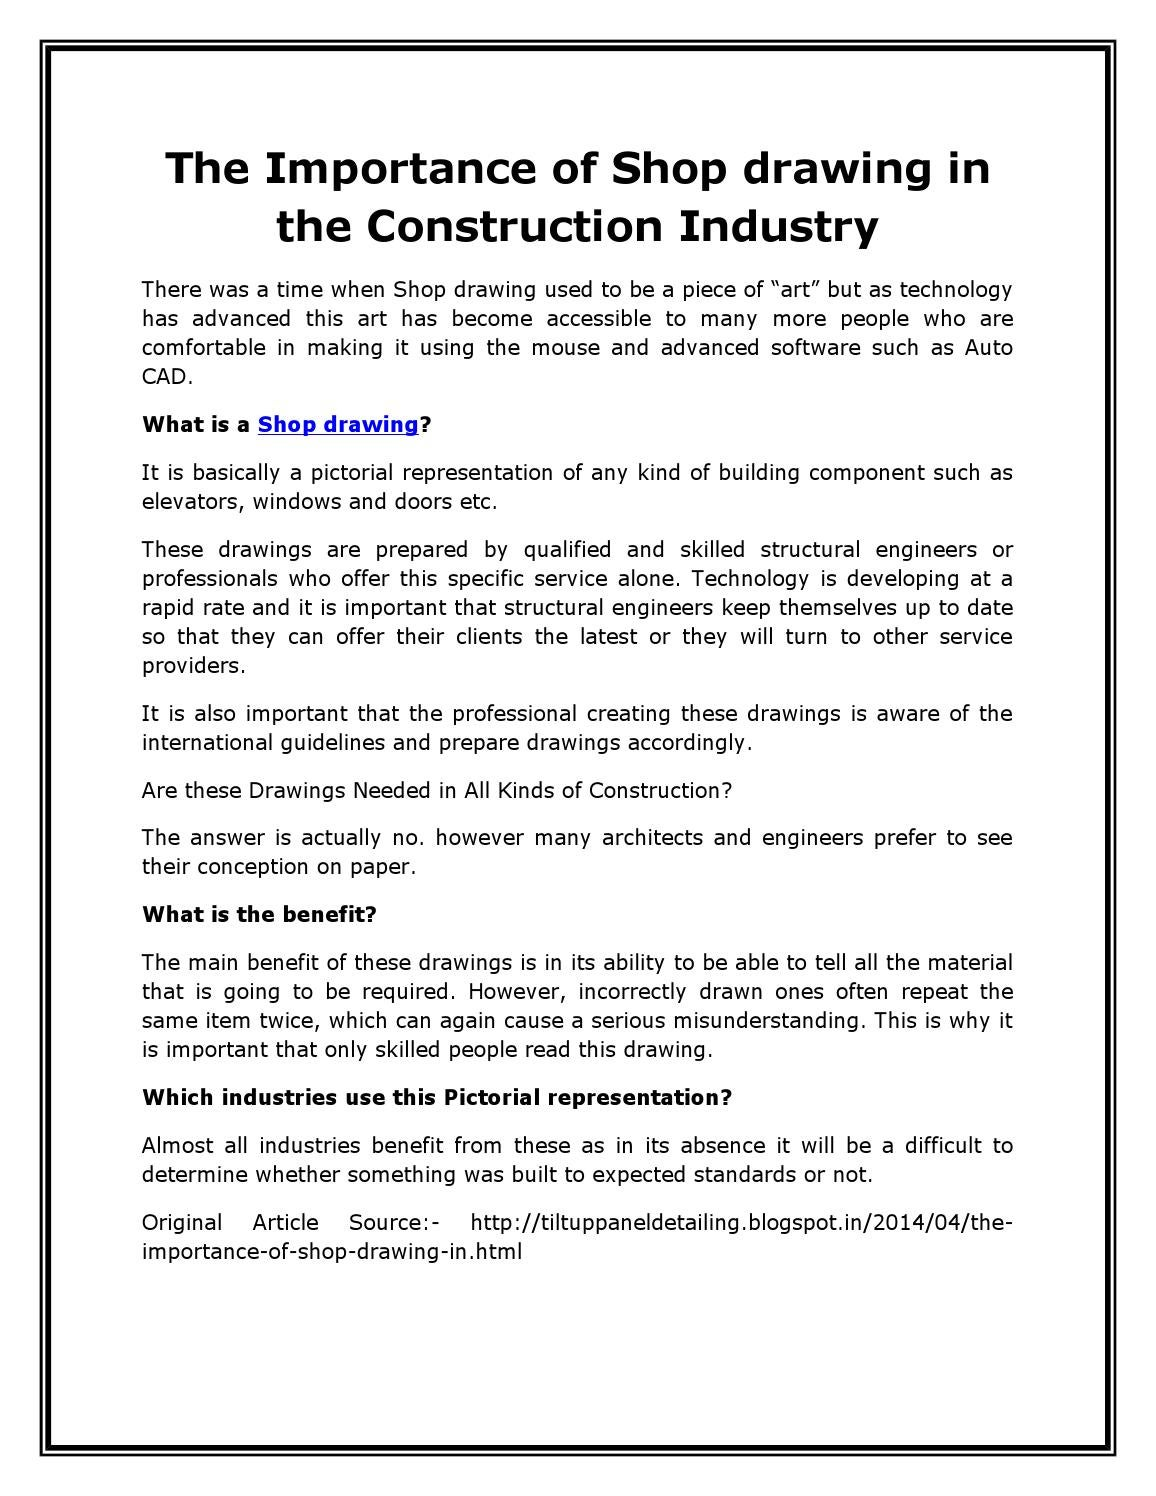 The importance of shop drawing in the construction industry